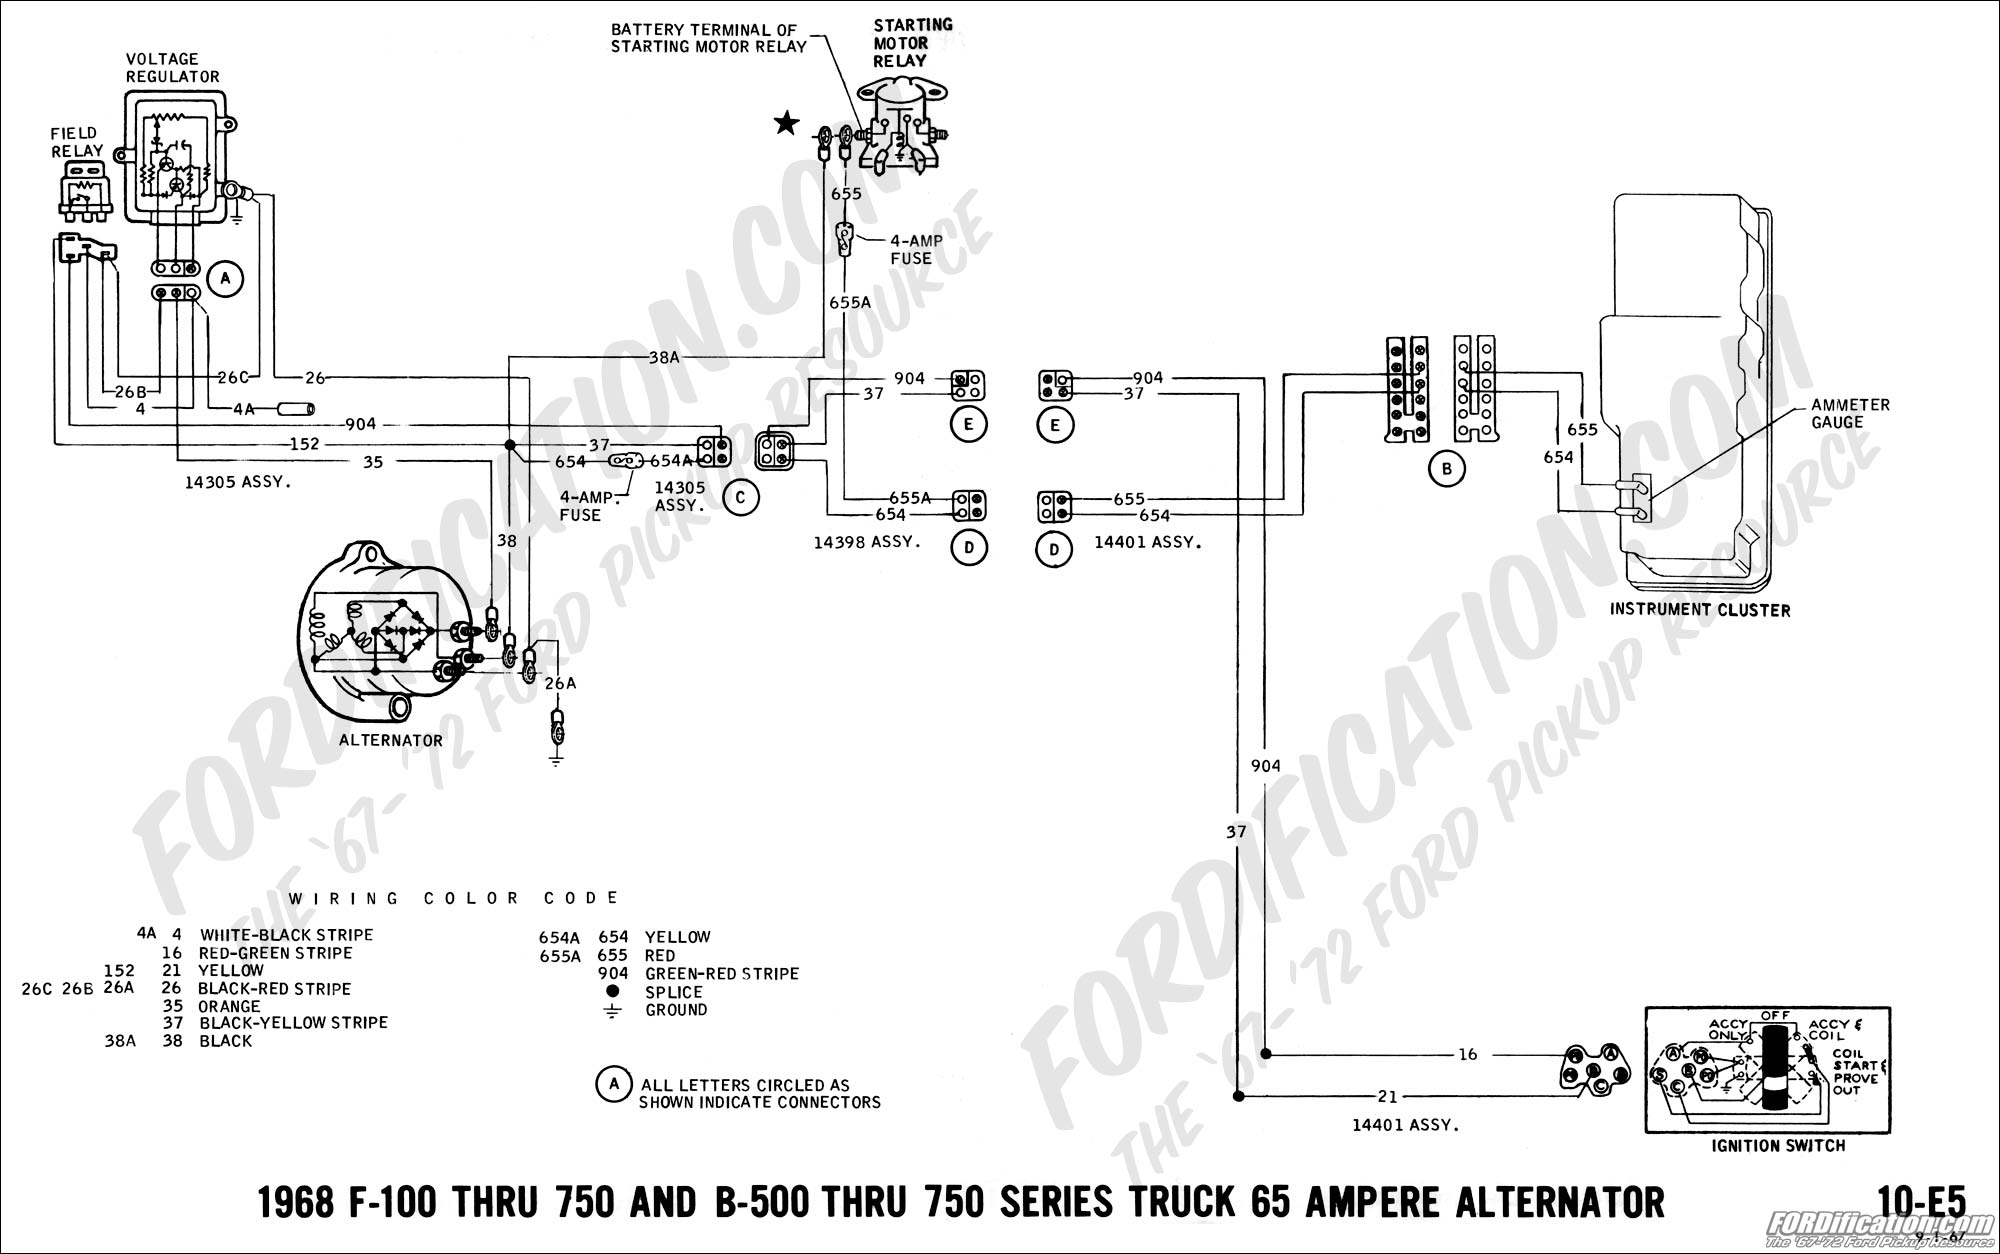 71 F250 Wiring Diagram Schematics Diagrams 1999 Ford F 150 Trailer Connector 1971 Detailed Rh Yogajourneymd Com 250 73l